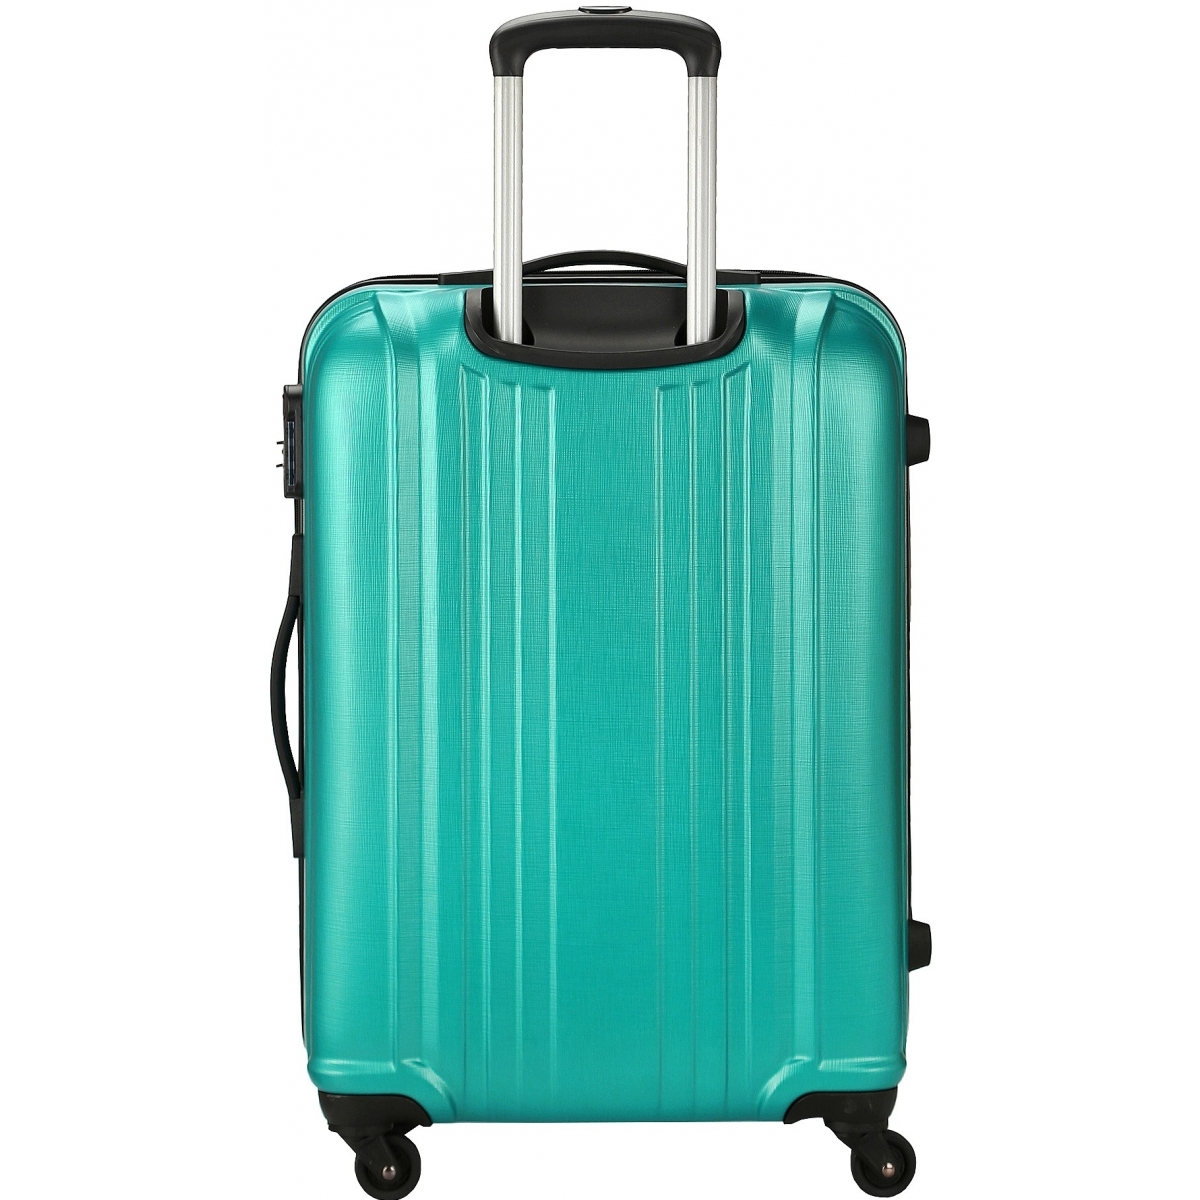 valise rigide david jones taille m 66cm ba10171m couleur principale turquoise valise pas. Black Bedroom Furniture Sets. Home Design Ideas